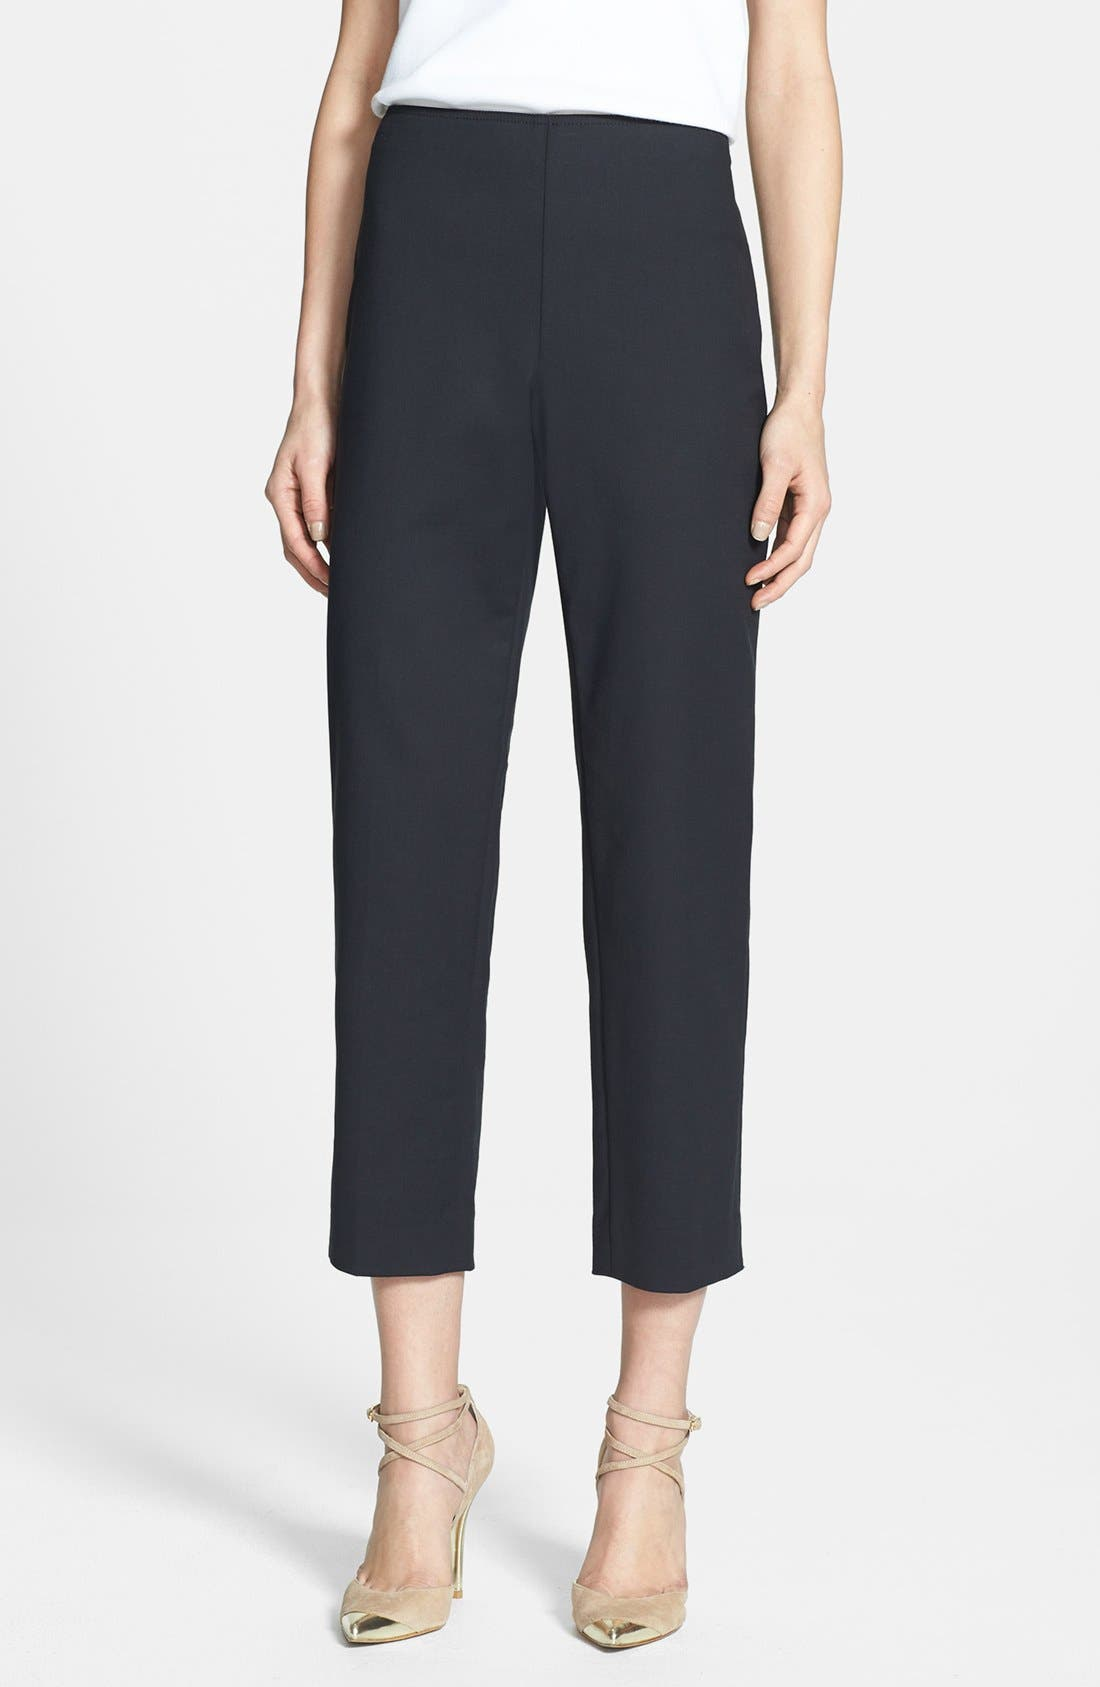 Alternate Image 1 Selected - St. John Yellow Label 'Audrey' Double Weave Stretch Cotton Capri Pants